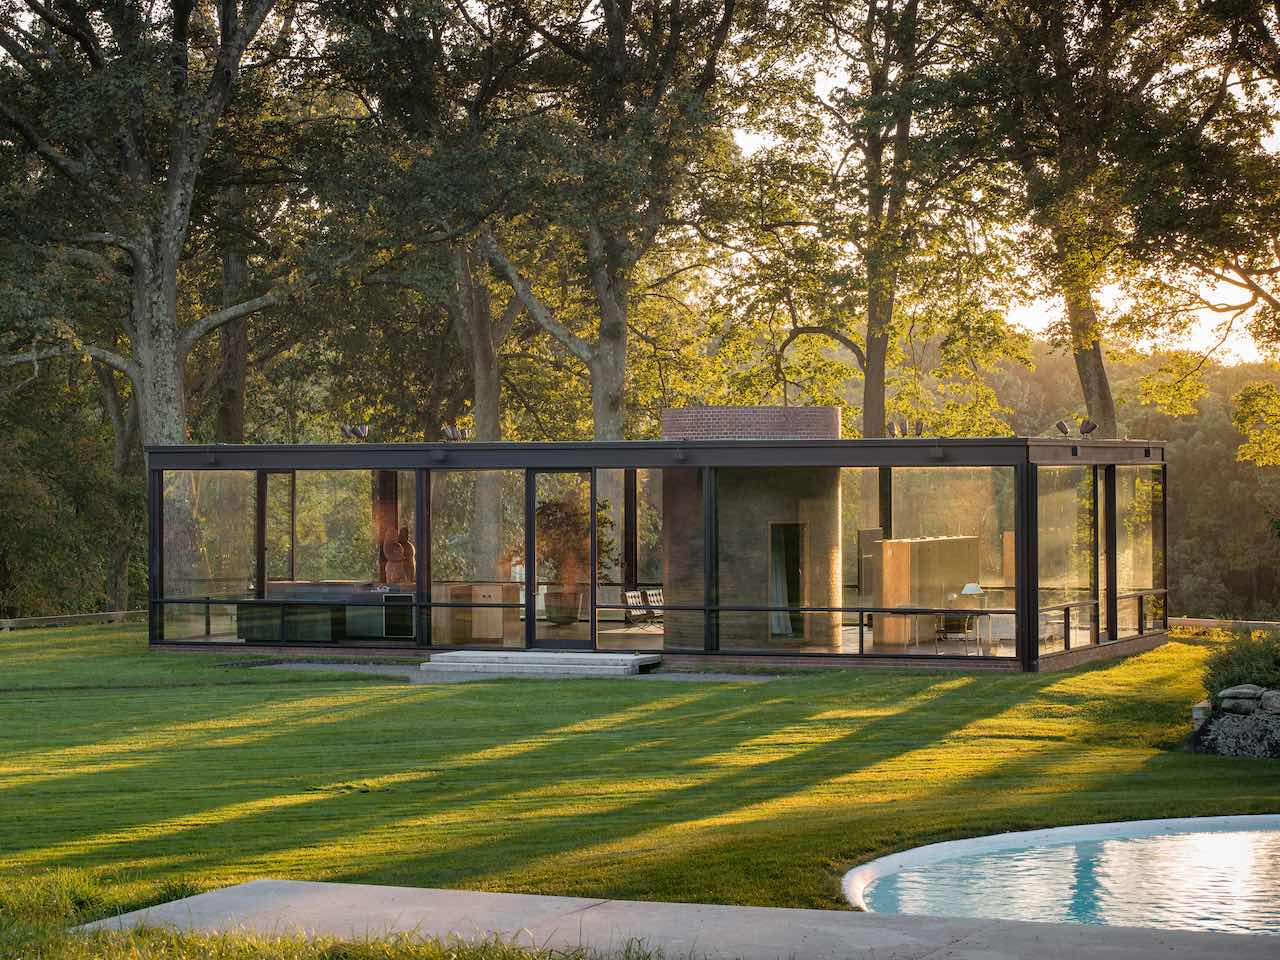 The Glass House New Cananaan